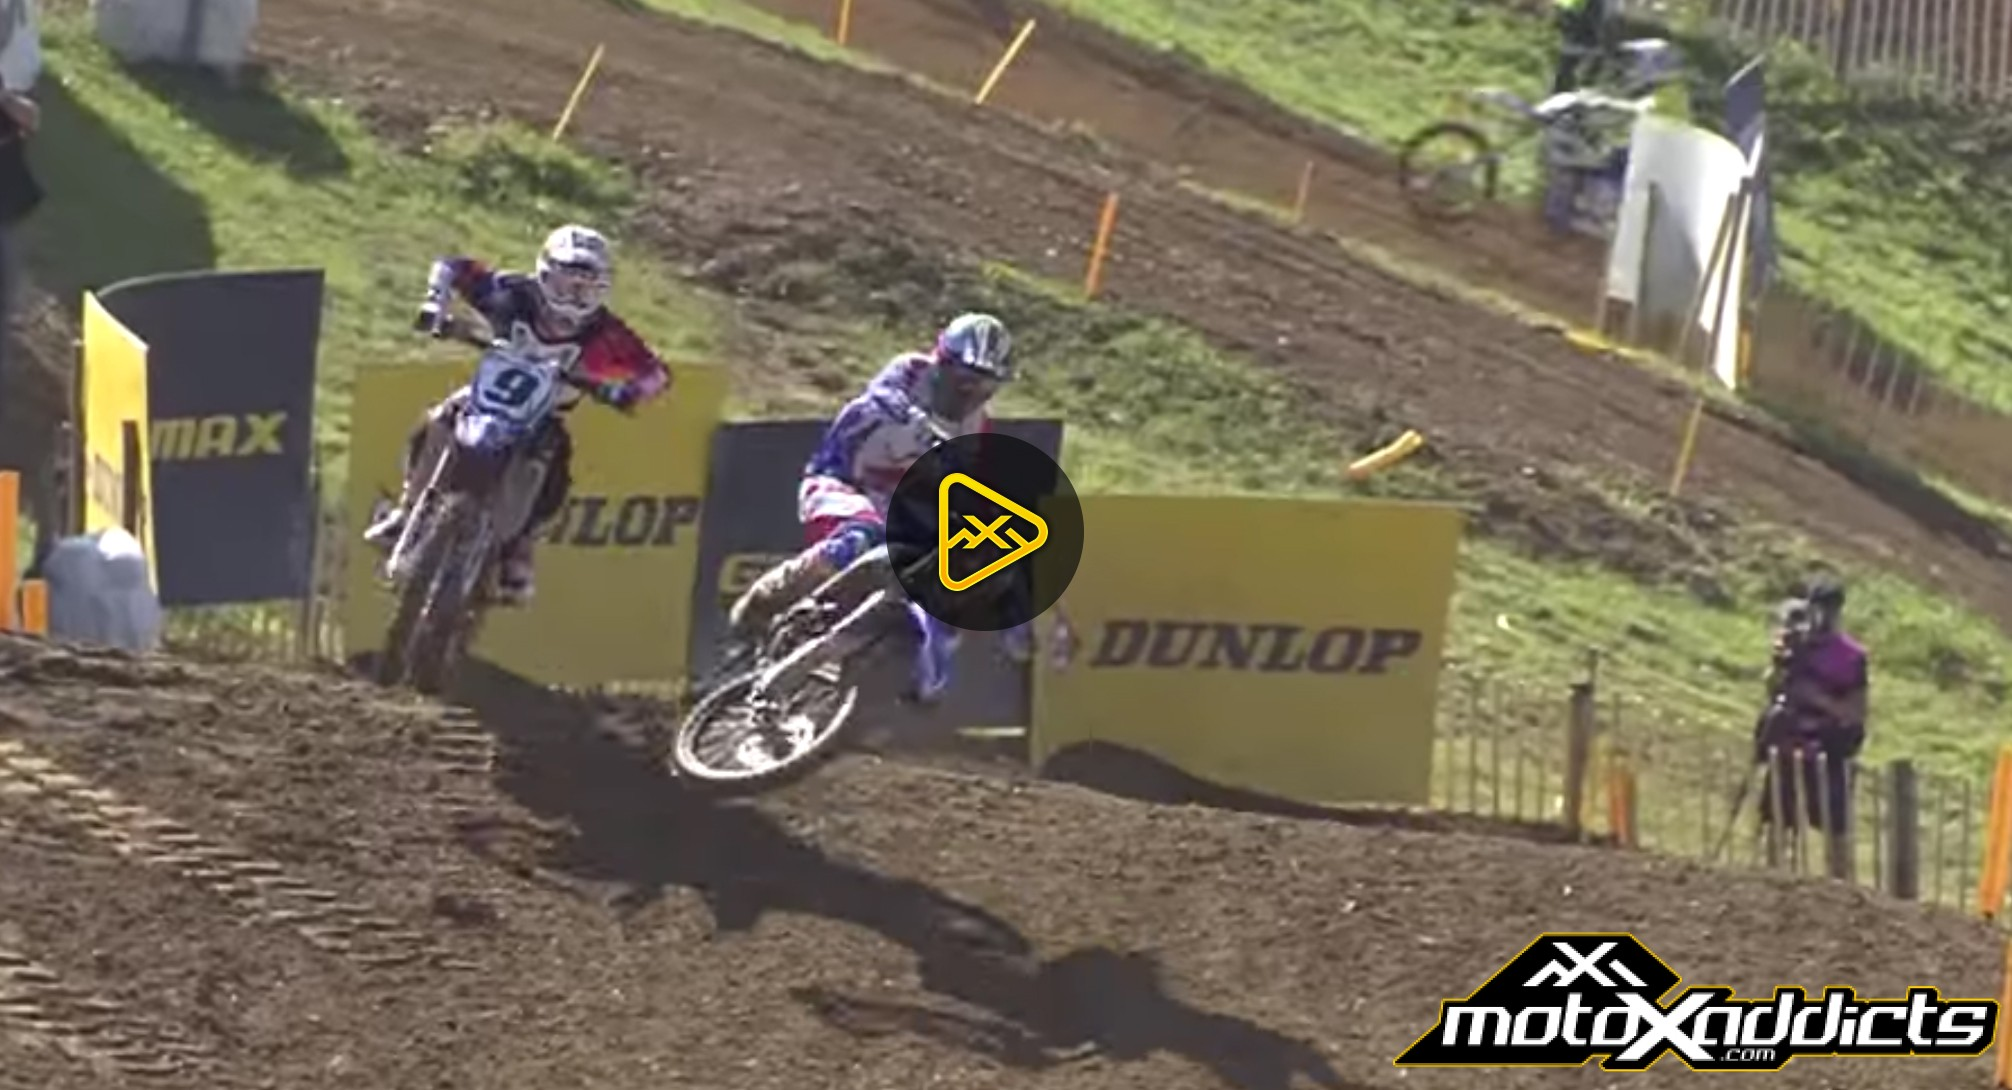 Highlights – 2015 Motocross of Nations in France